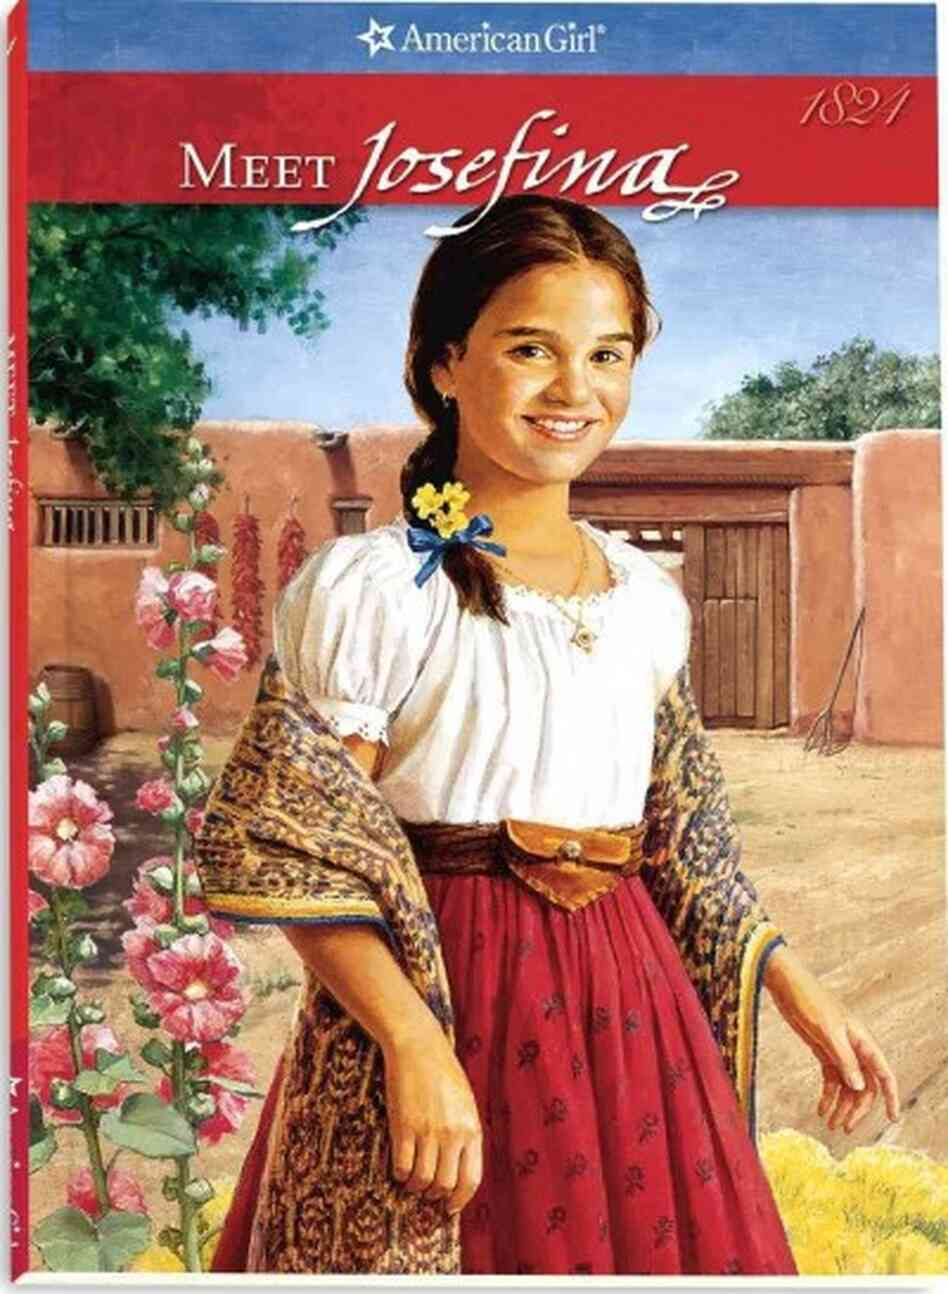 Meet Josefina, an American Girl